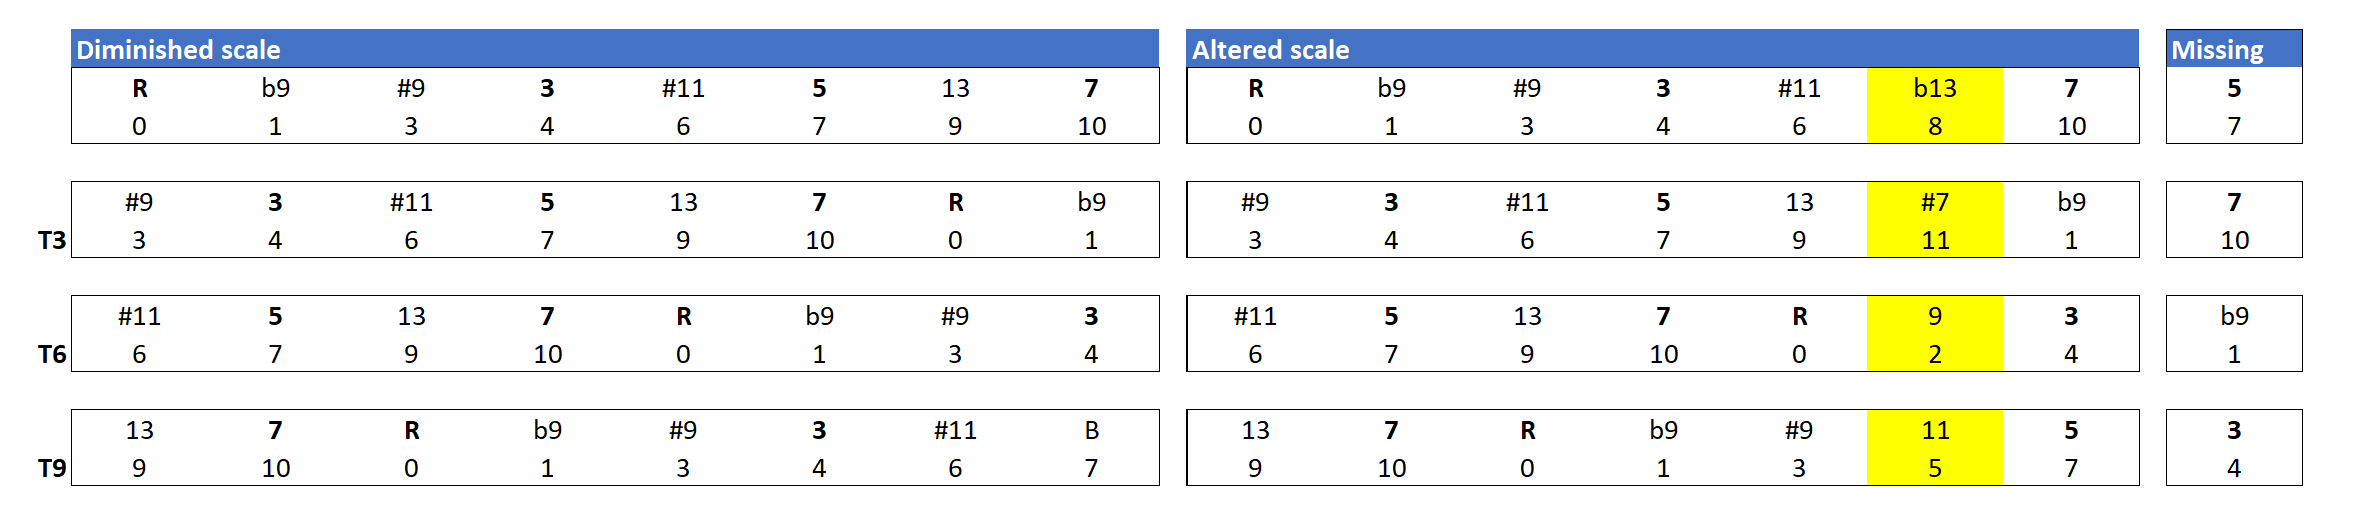 Comparison of the altered scale and the diminished scale, showing transpositions at the minor third.